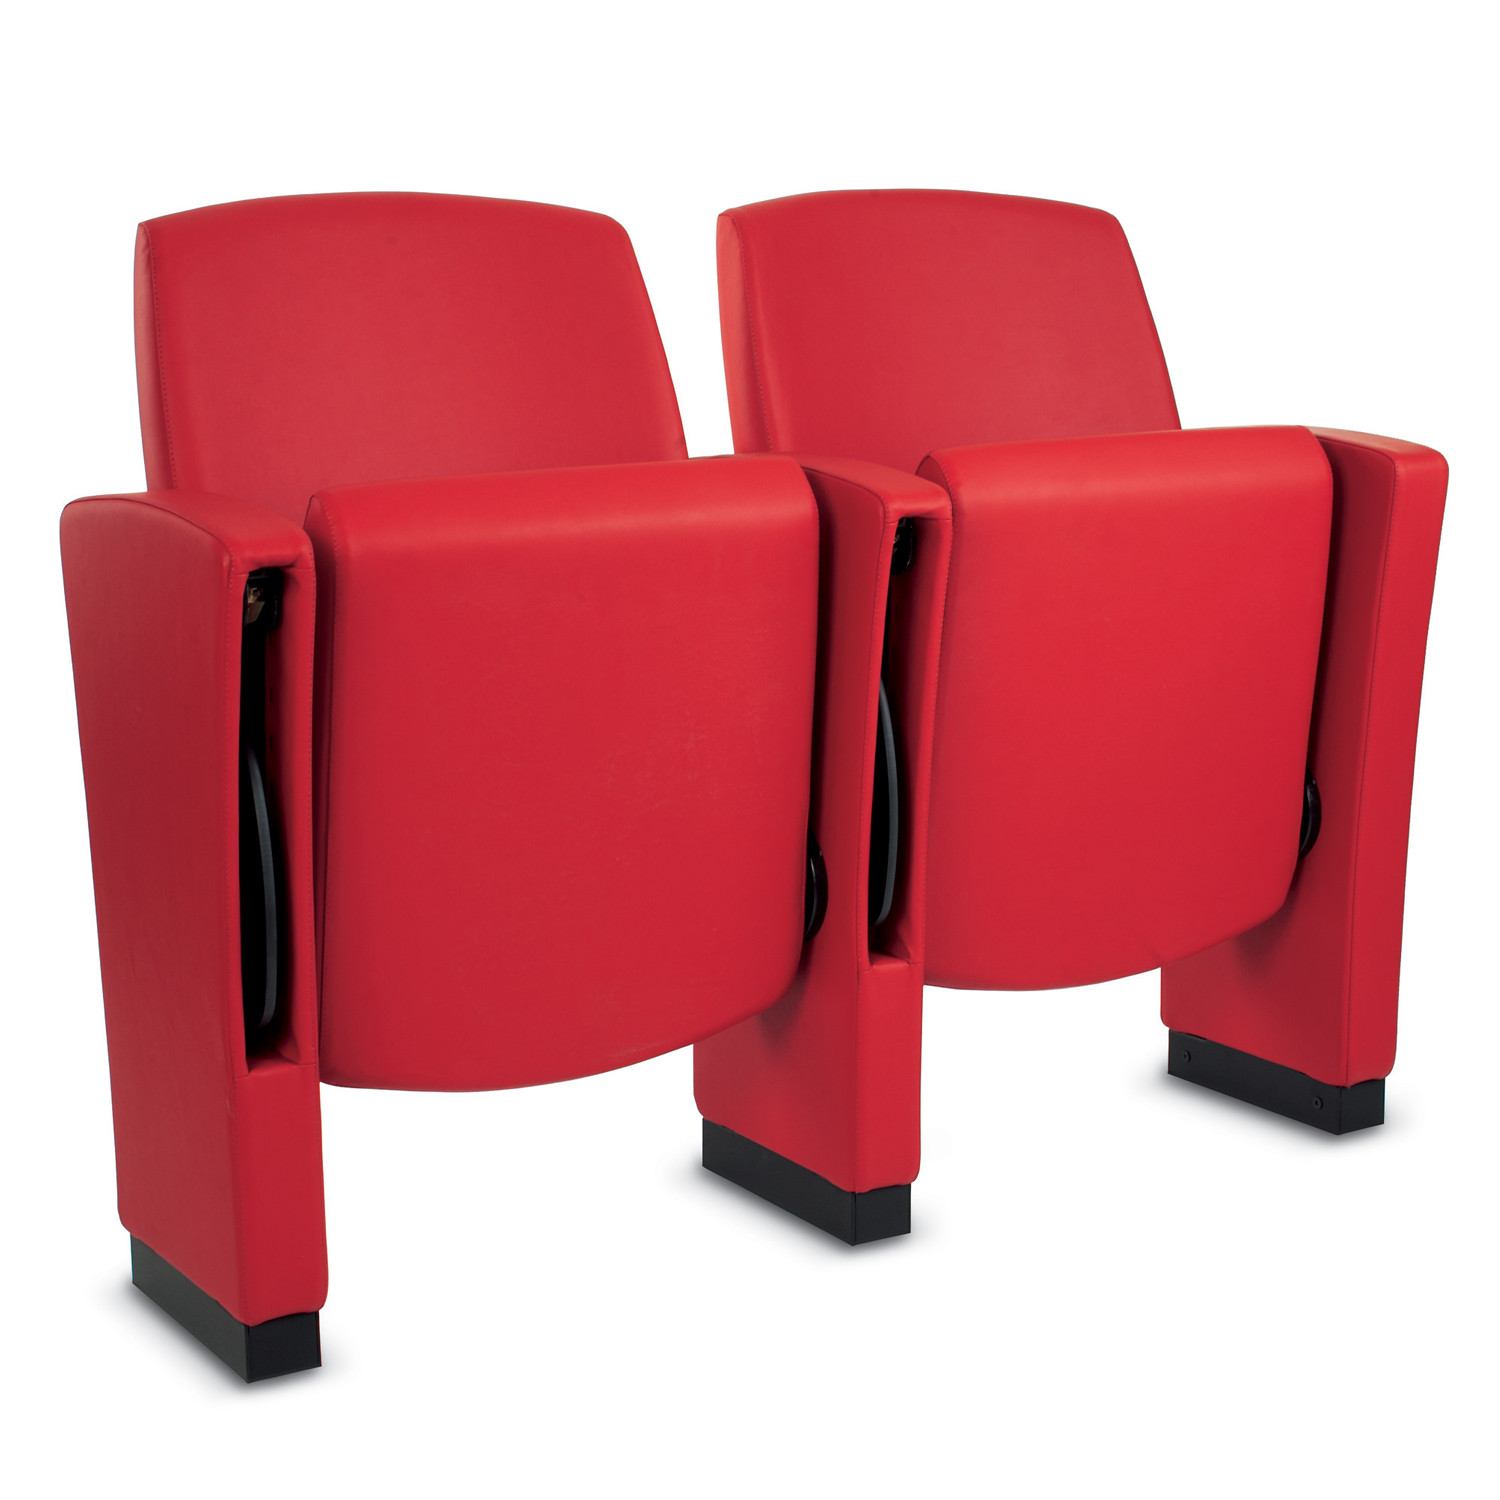 Concerto Theatre Seating